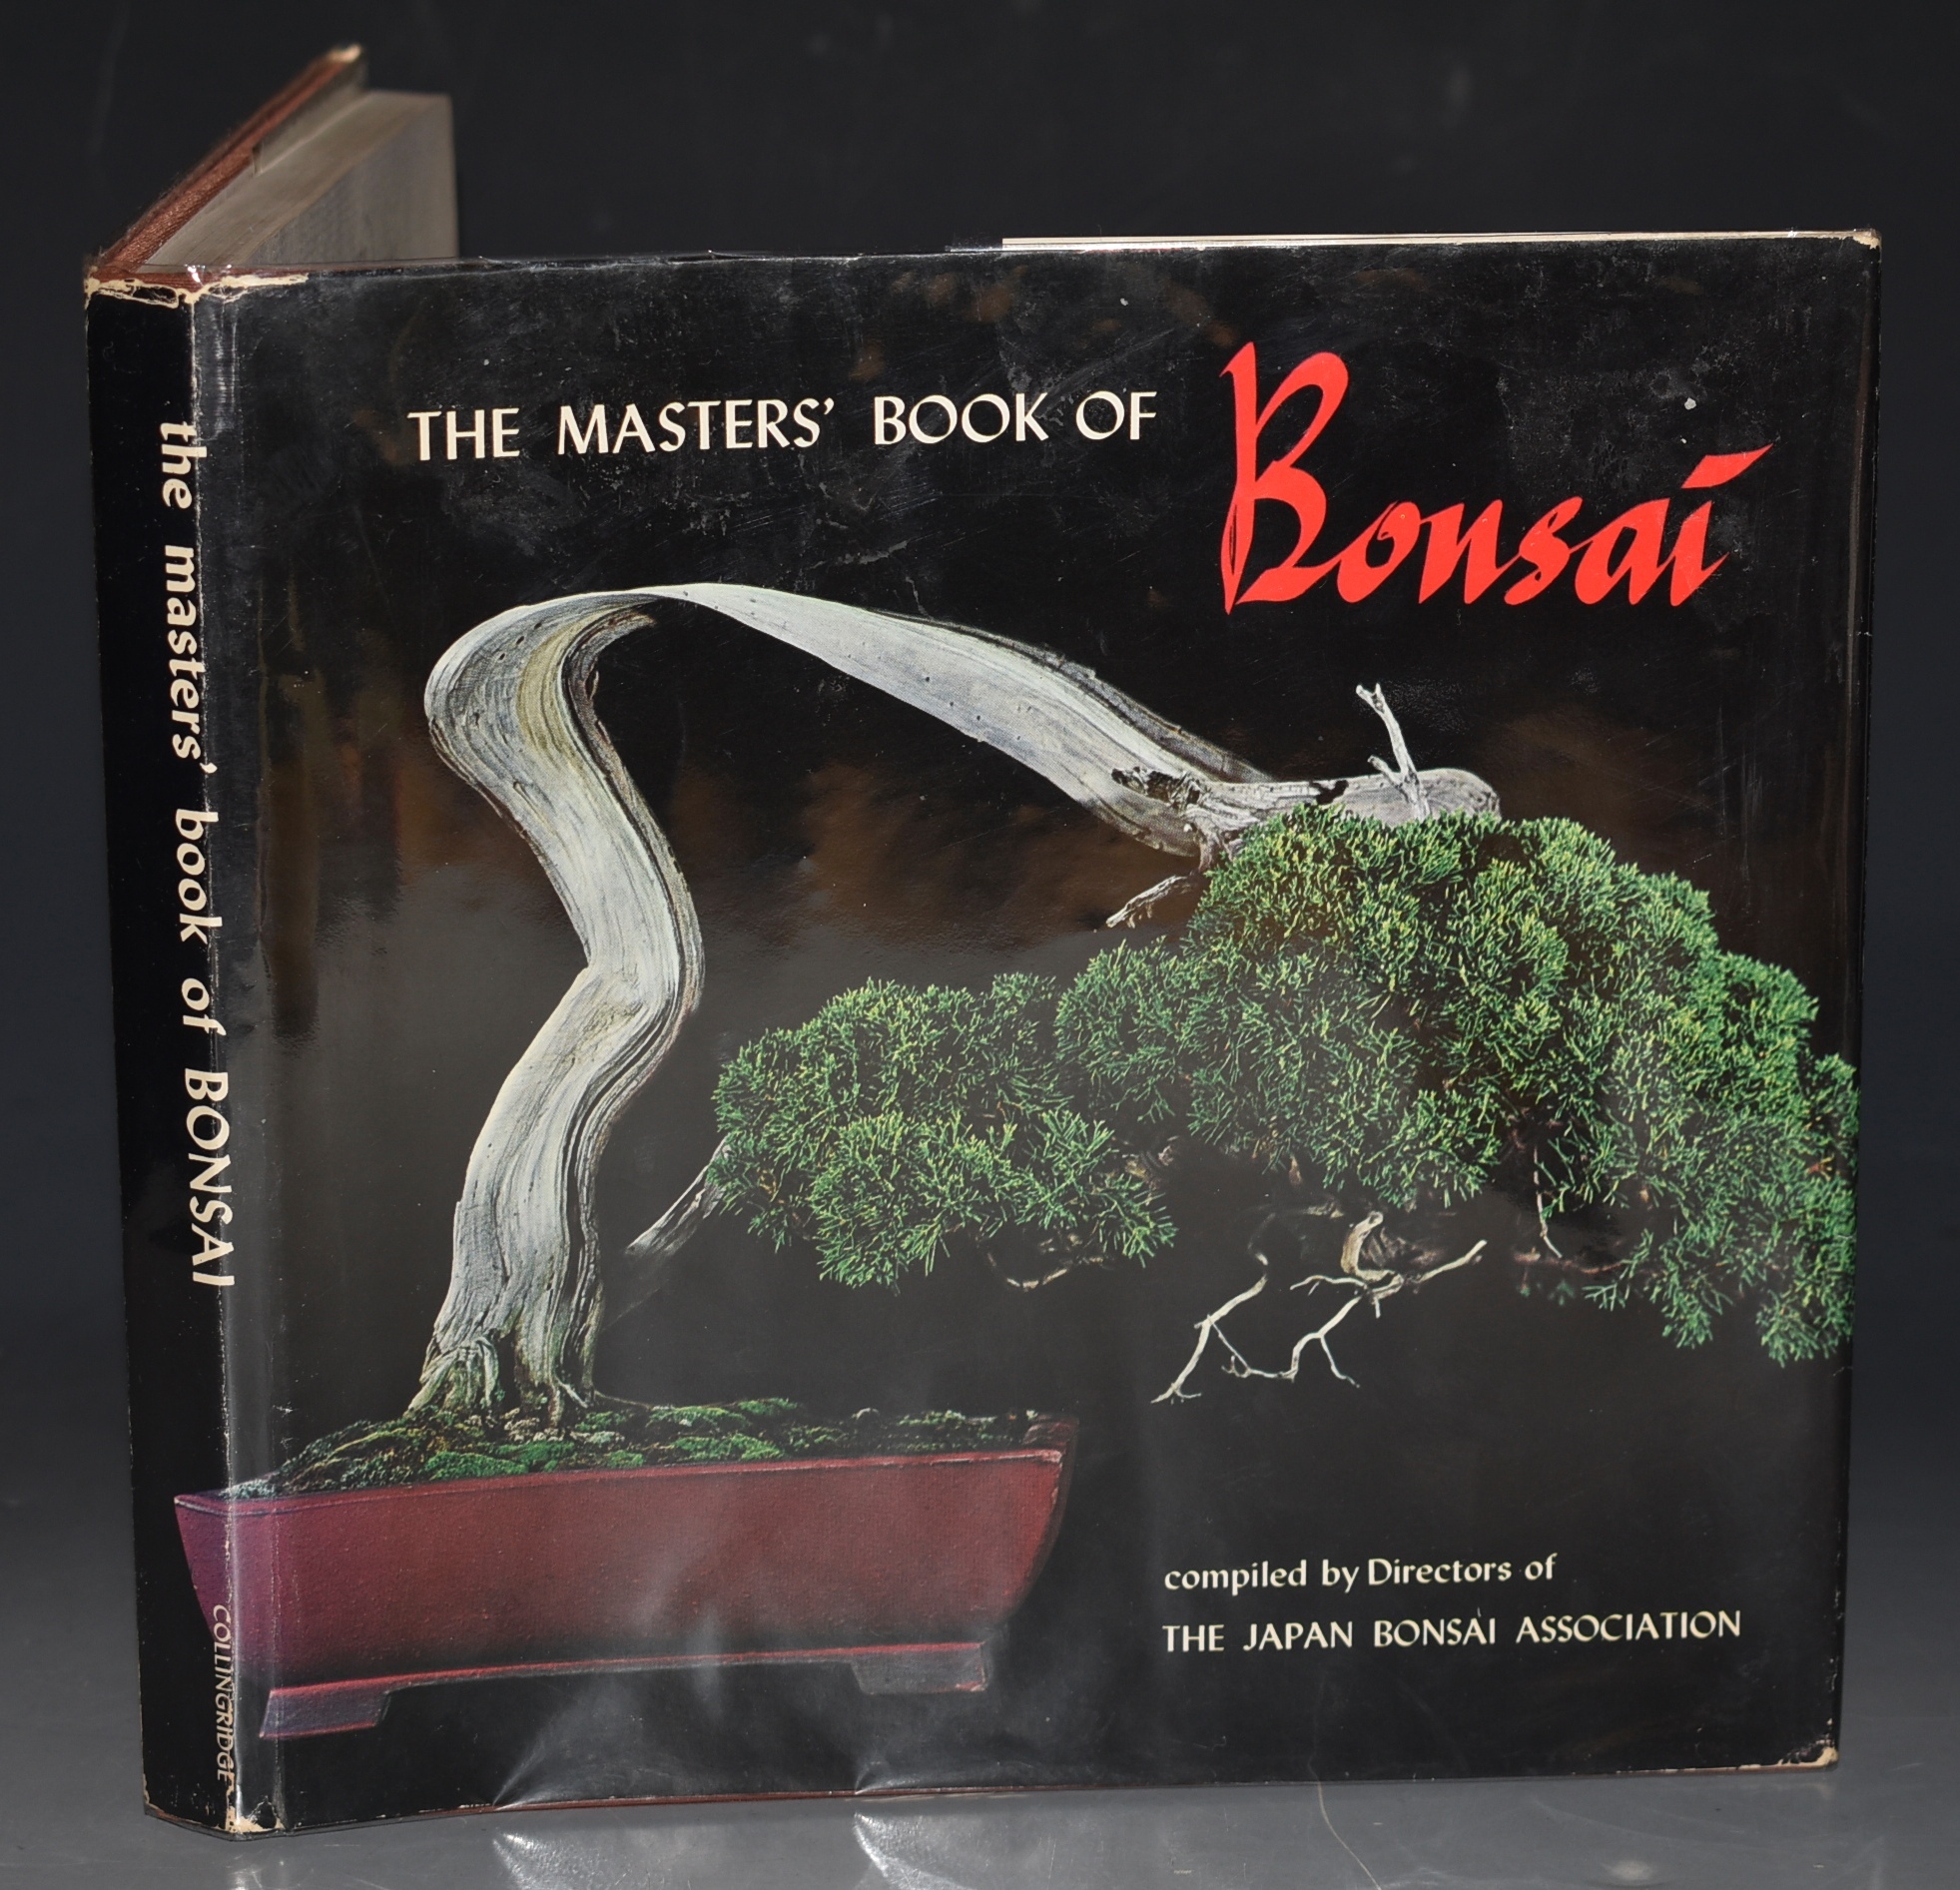 Image for The Master's Book of Bonsai By Directors of the Japan Bonsai Association.